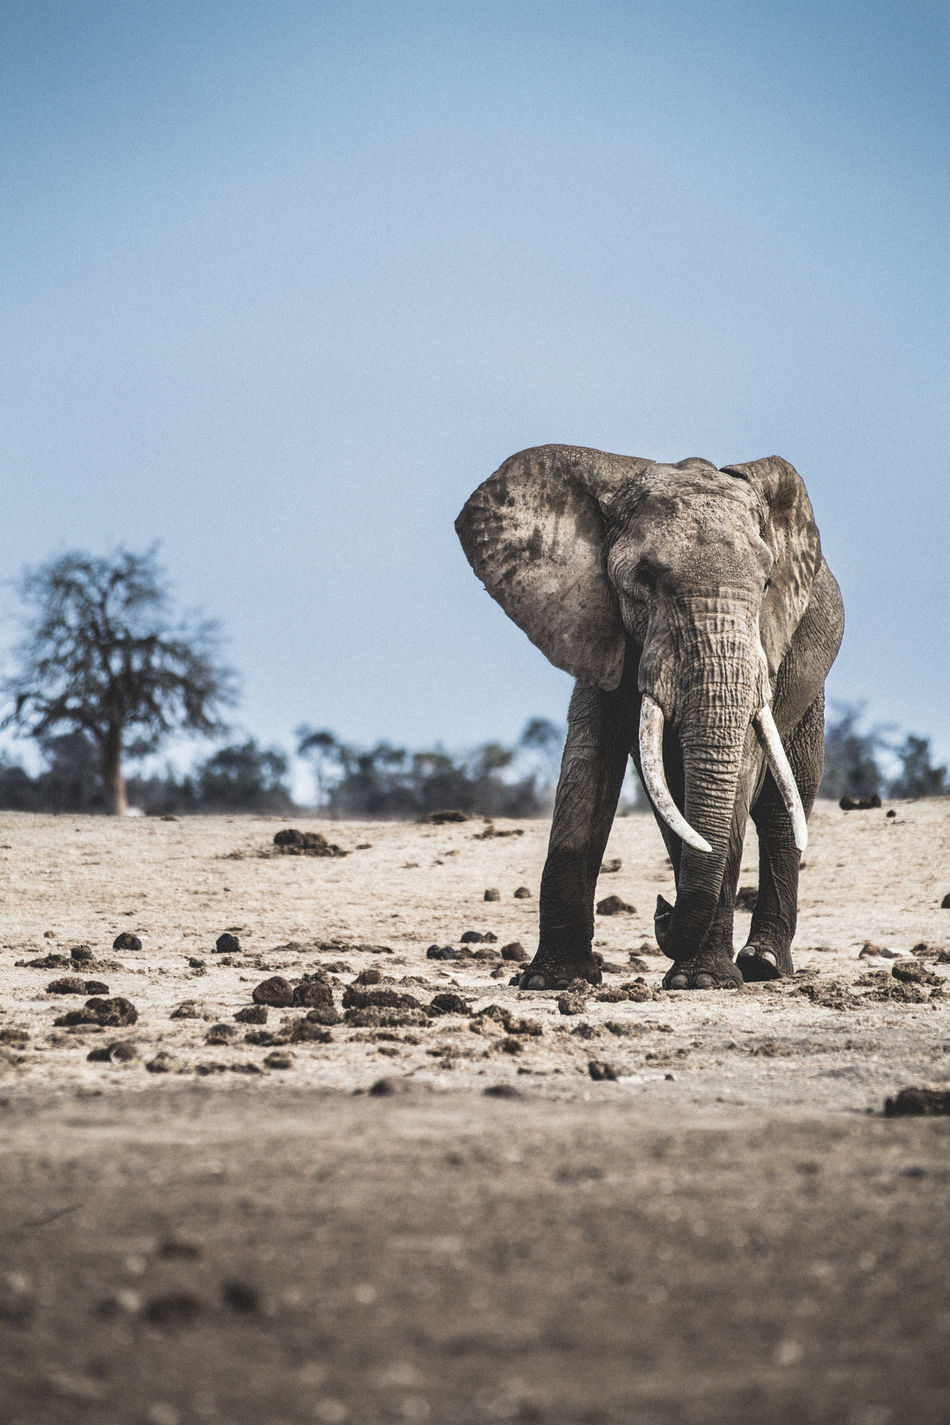 The Vigil and the Tree African Elephant Animal Wildlife Animals In The Wild Day Elephant Full Length Ken Kenya Mammal Nature No People One Animal Outdoors Sand Sky Standing Tree TSA Tsavo EyeEmNewHere